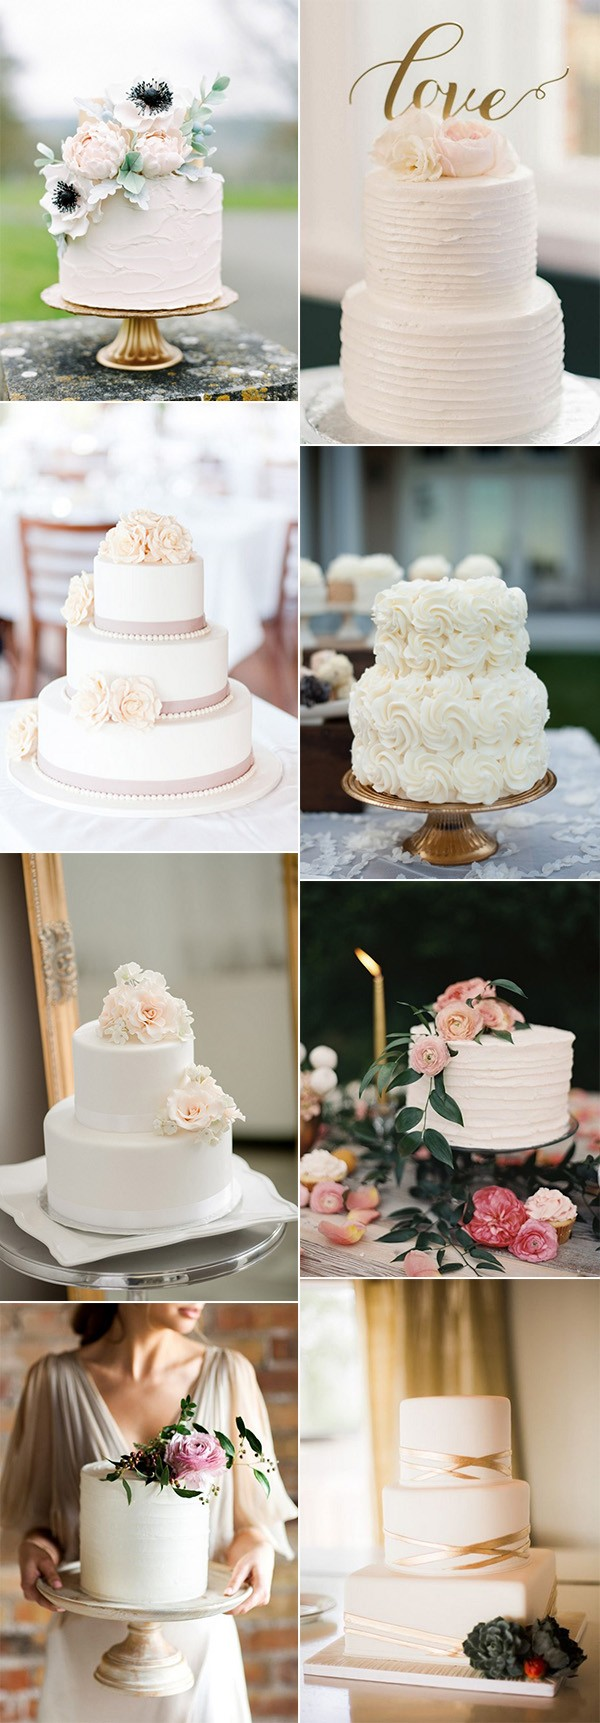 trending simple but elegant wedding cakes